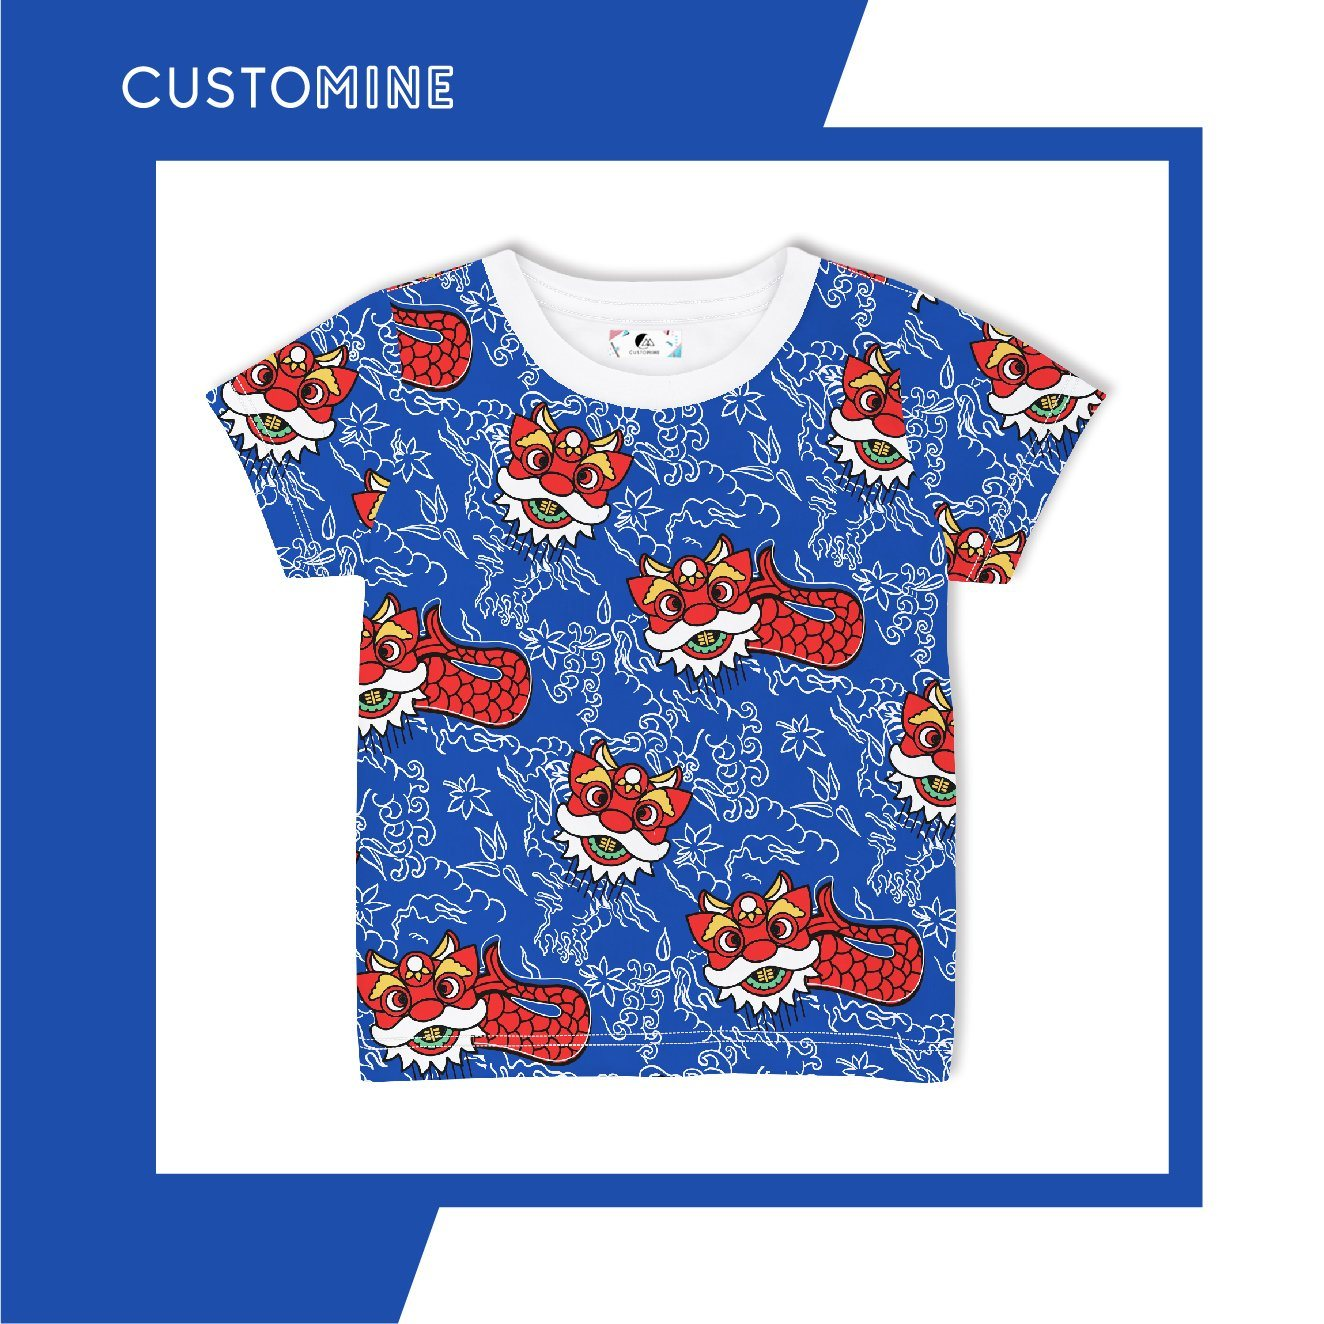 Merlion Dance Kid's T-Shirt (Pre-Order) - Kids Clothing - CUSTOMINE - Naiise